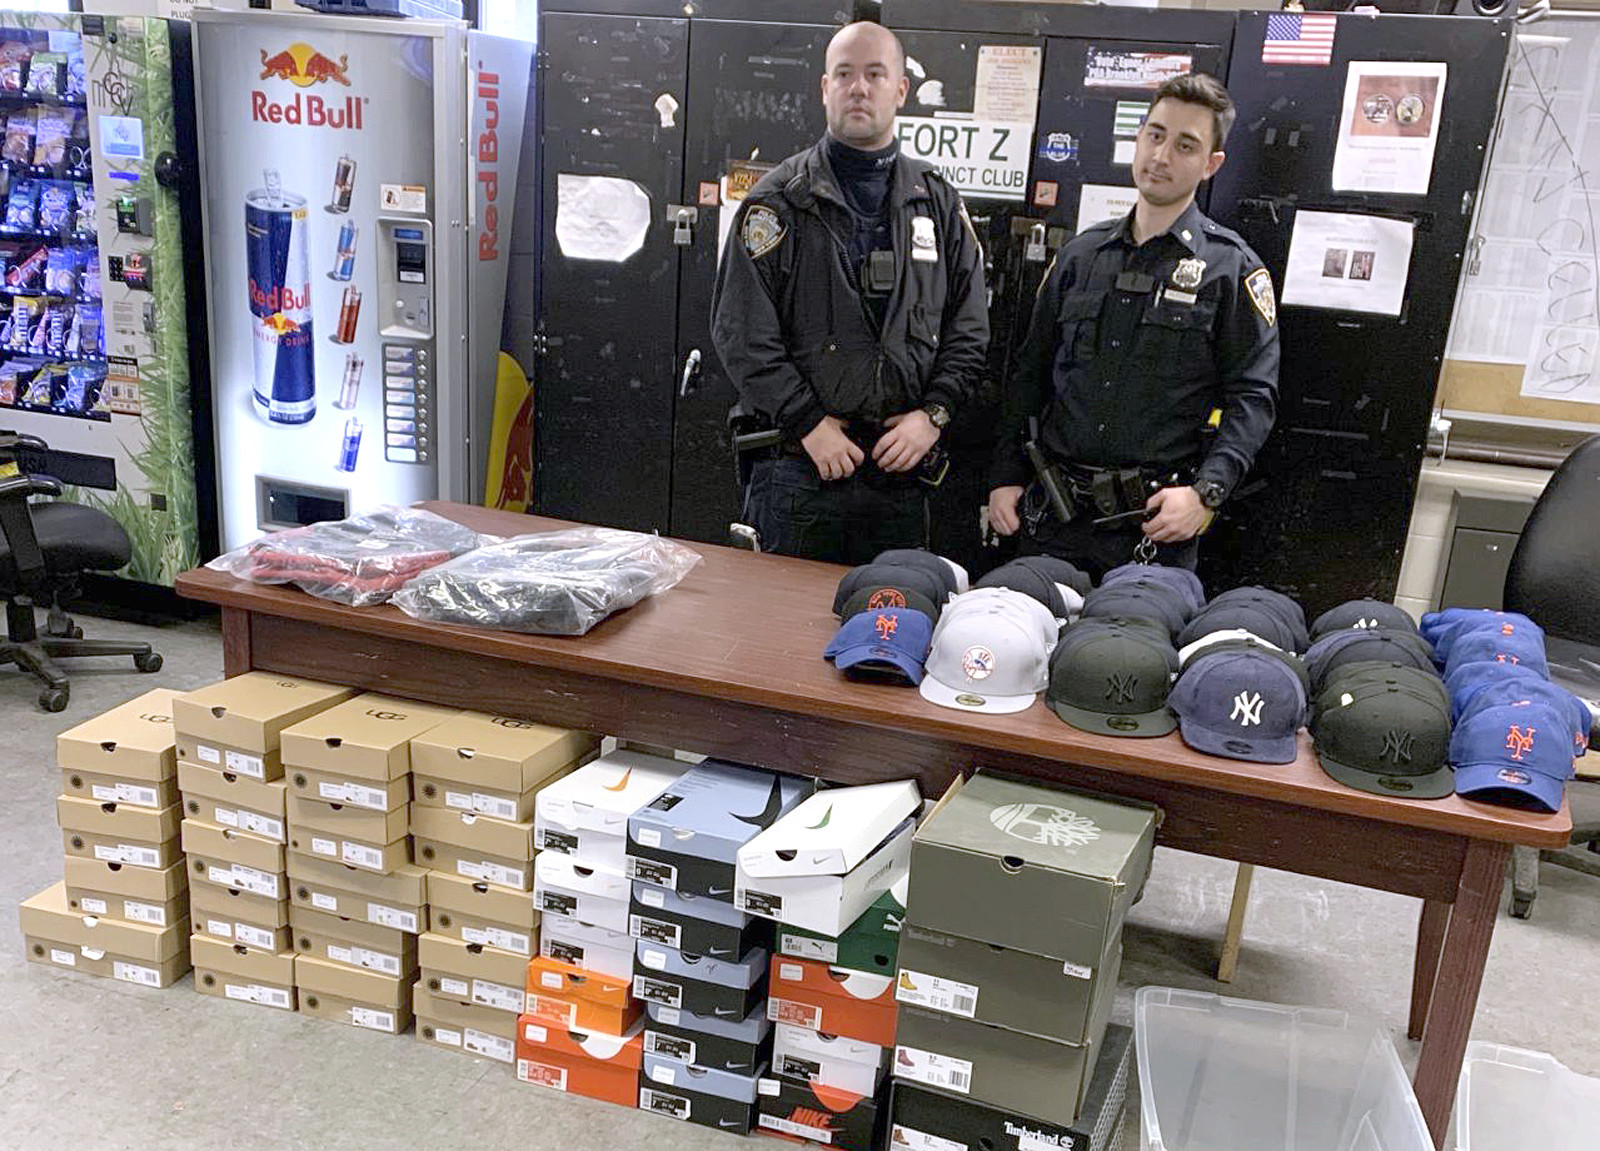 Cops bust thieves trying to steal dozens of shoes and baseball caps from closed Brooklyn Foot Locker